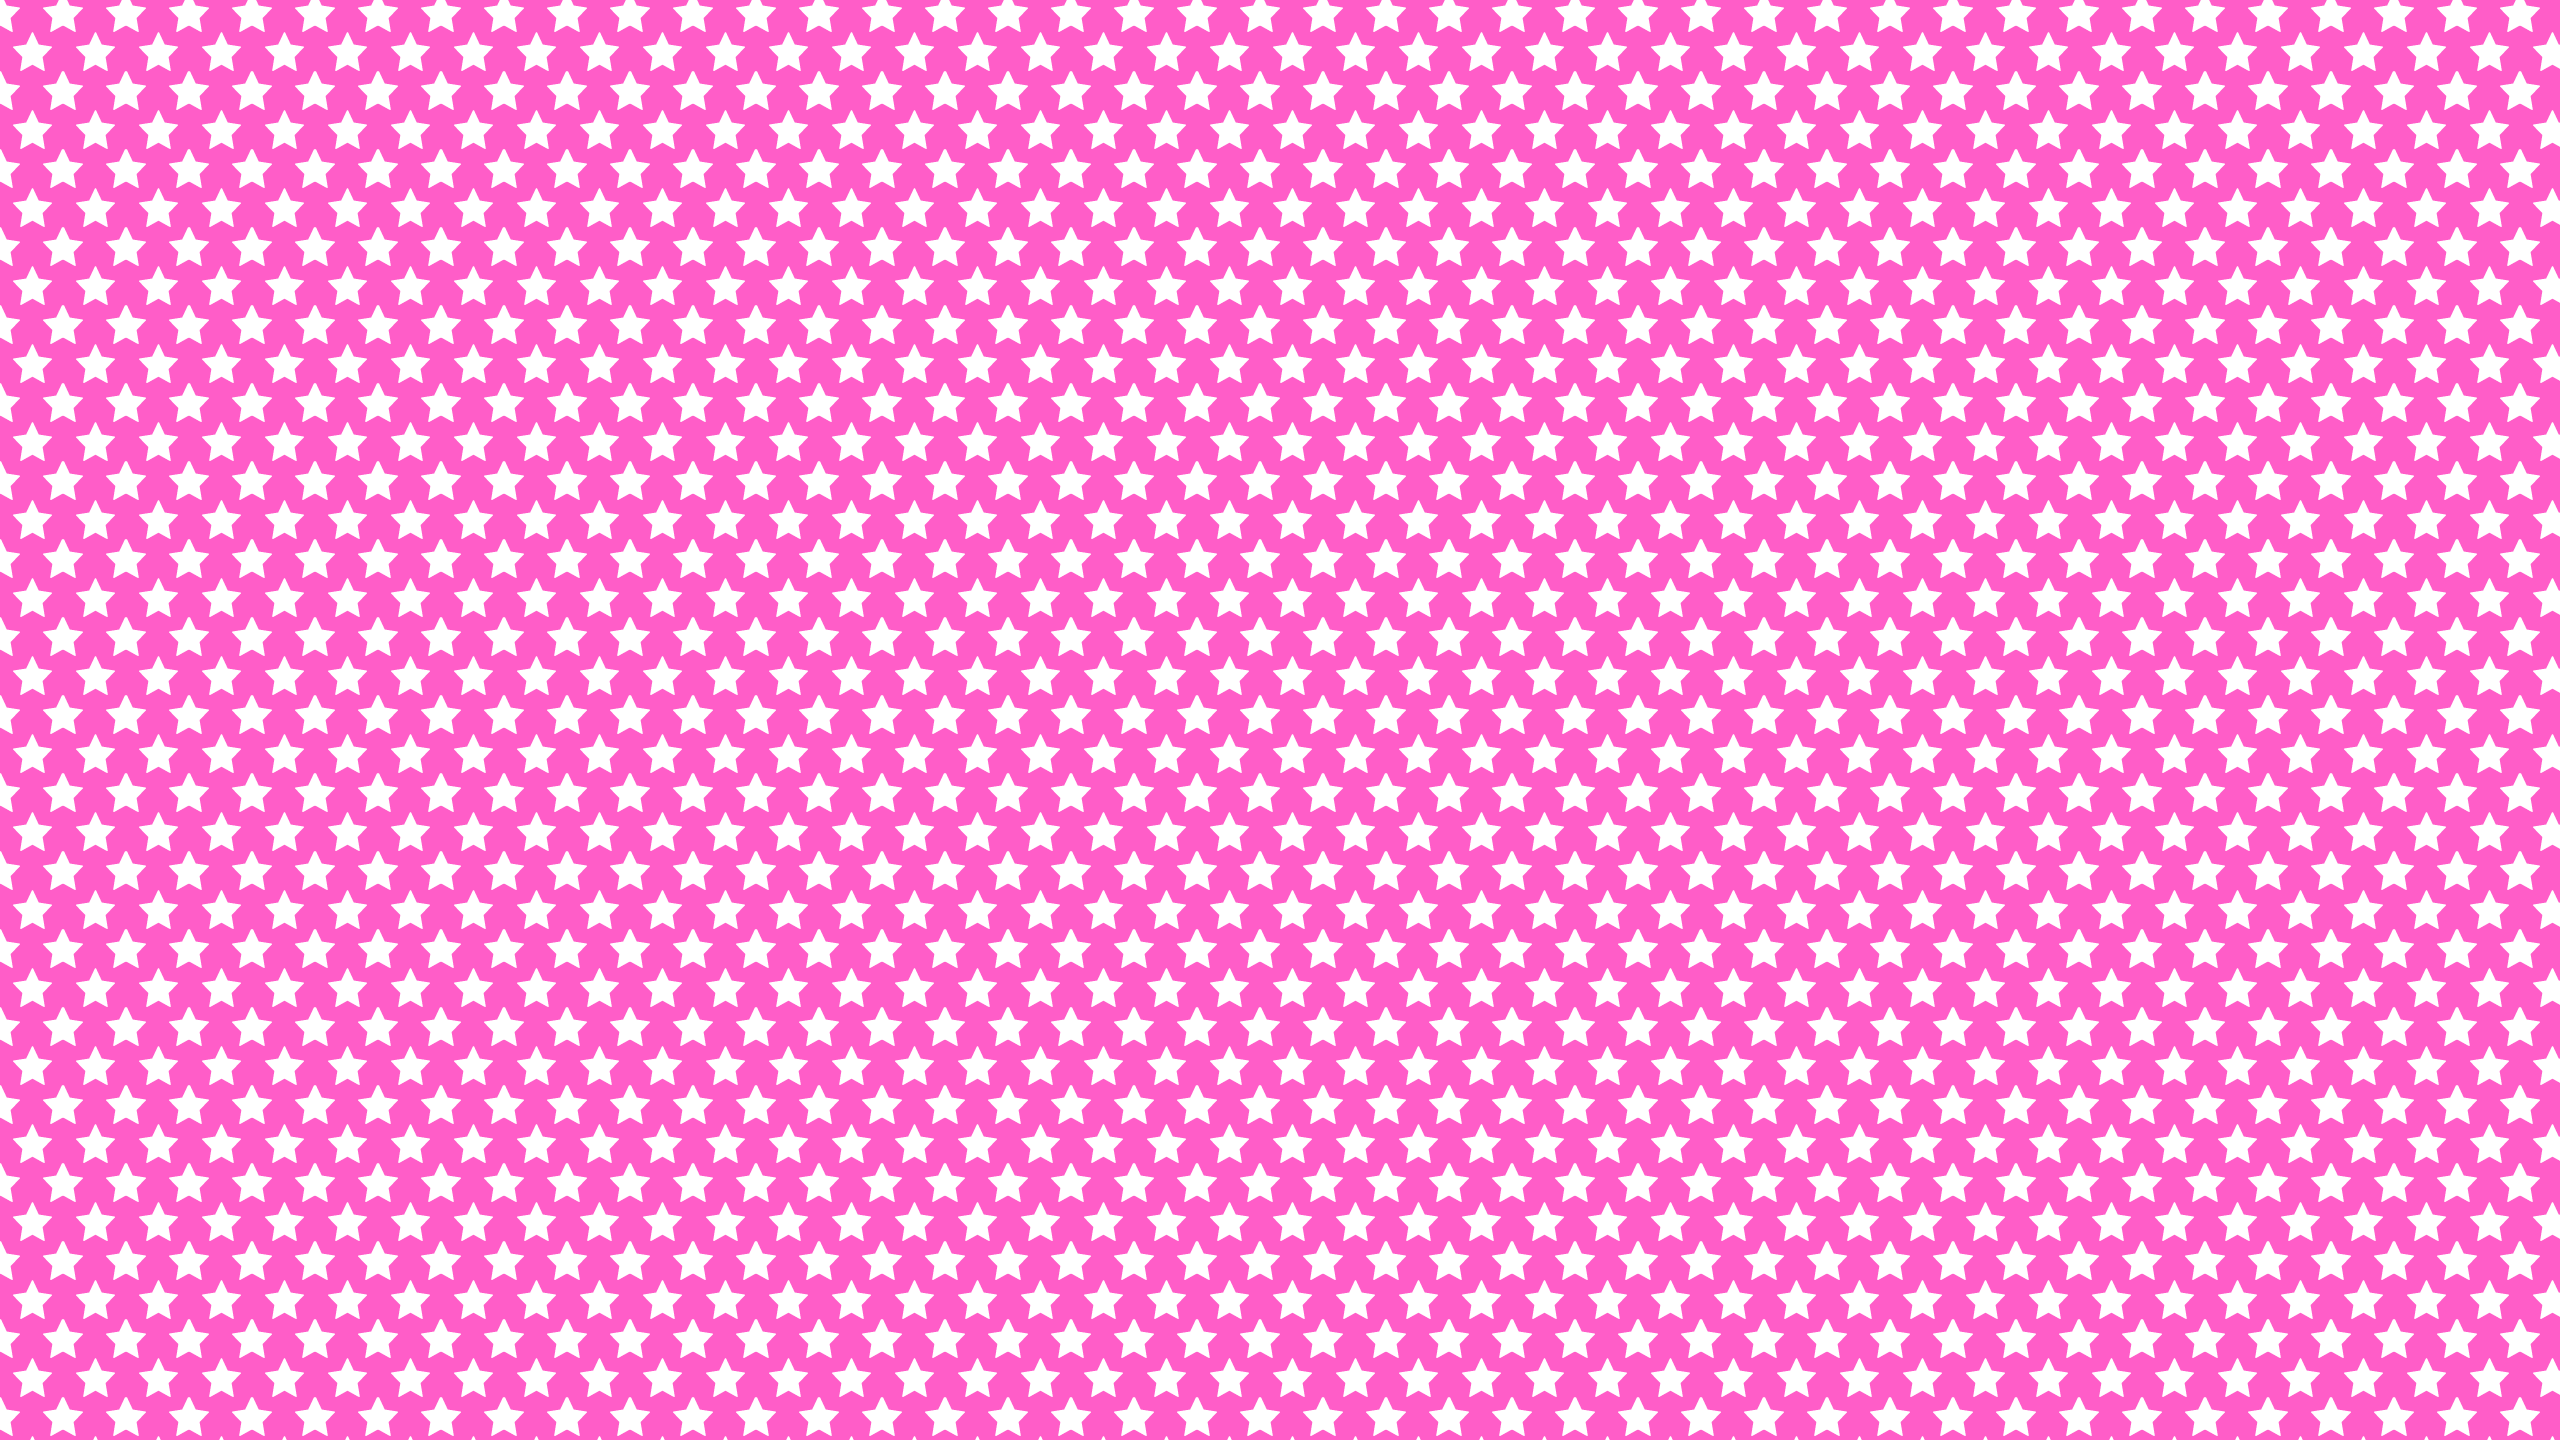 Pink Star PNG HD - 147221